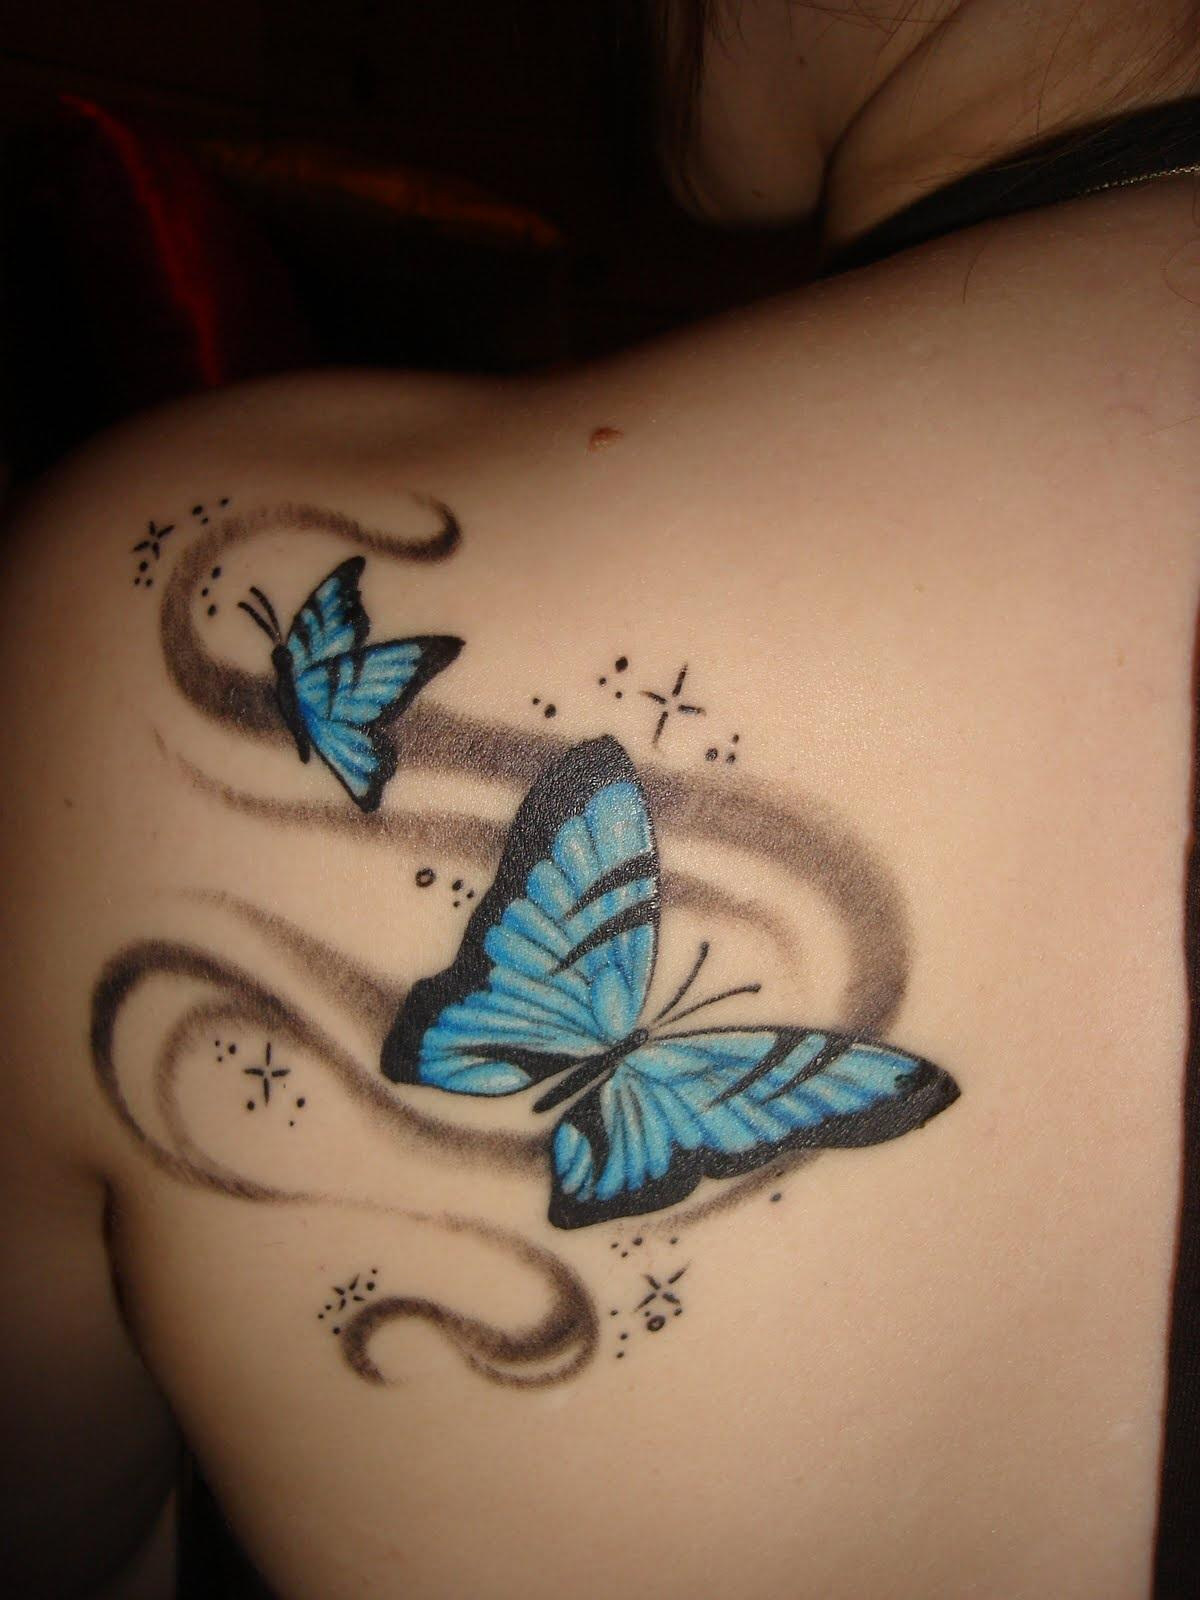 Most common tattoo designs and their meanings for Tattoo ideas and meanings